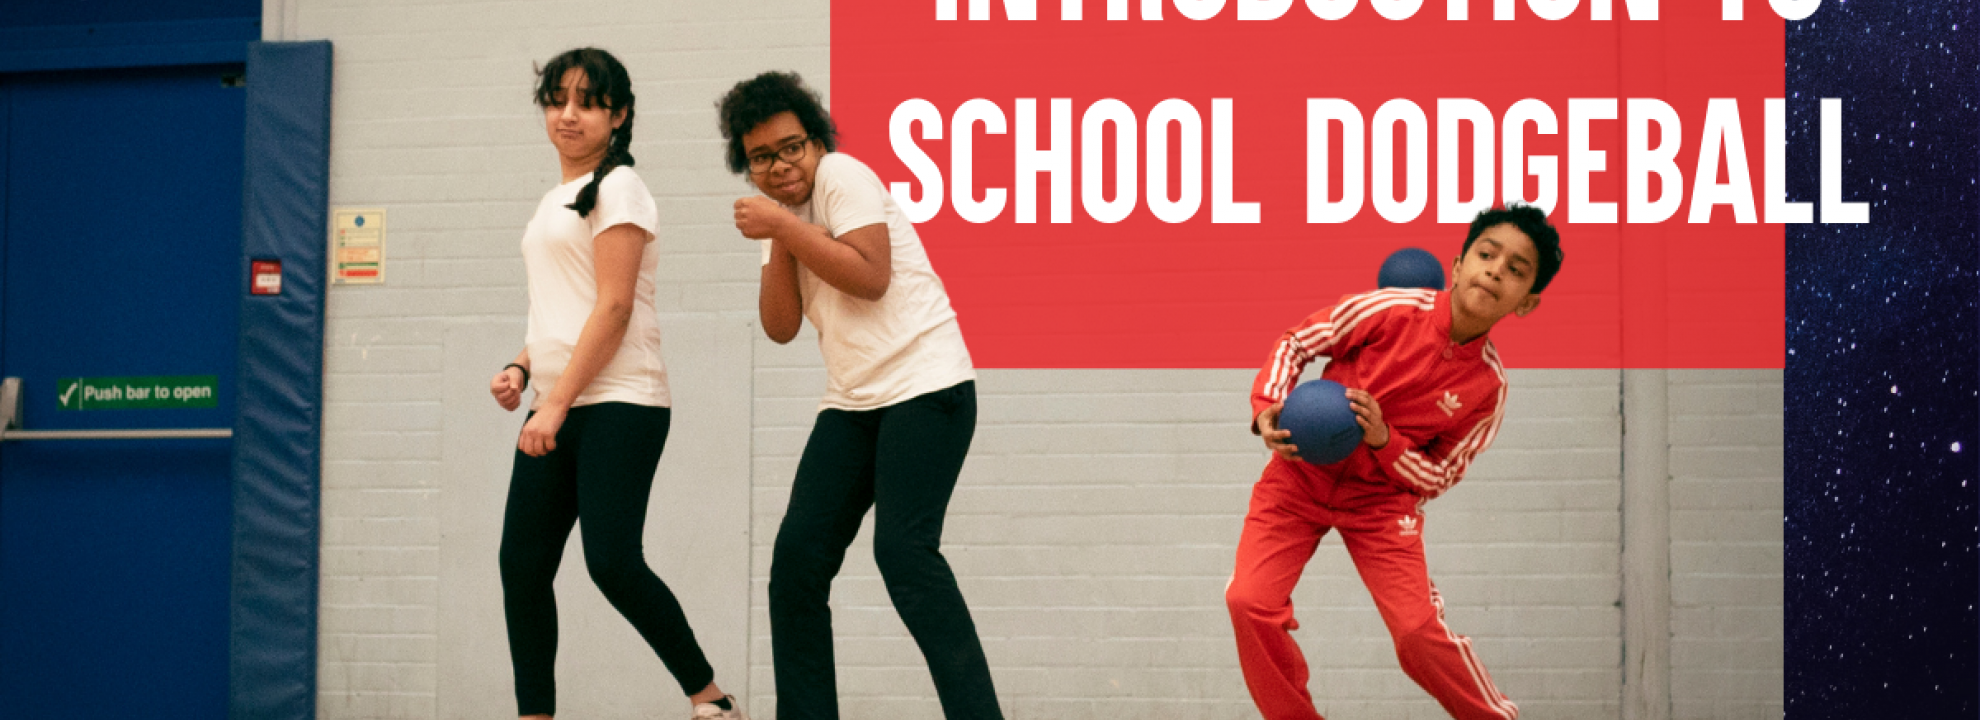 Introduction to School Dodgeball Online Course Banner